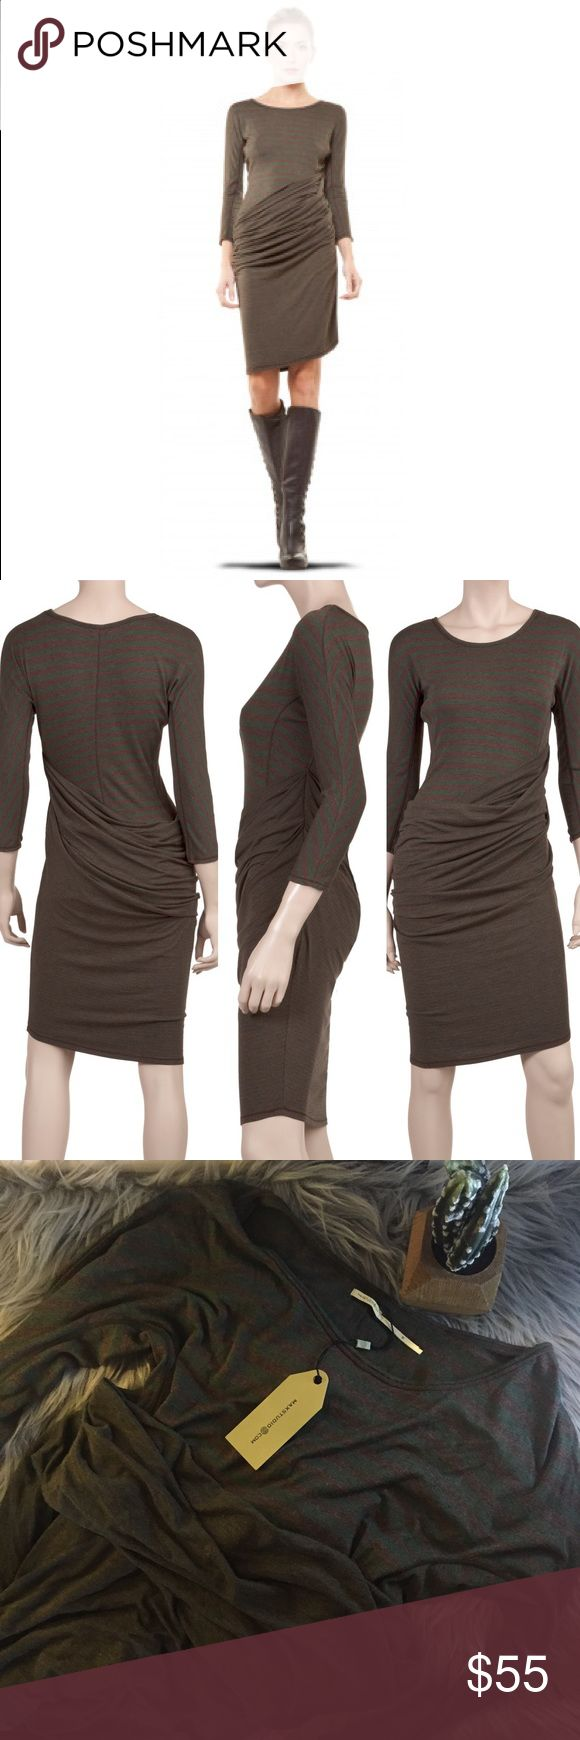 Just in time for F🍁LL Draped Dress Brand NWT body con Maxstudio draped dress. This soft viscose jersey dress is a subtly sexy must-own for desk to dinner glam. Look close at the sleek silhouette and goddess drape across the hips. The bi-striped combination adds extra charm. Wear as a dress with tights and boots or layered over leggings tunic-style. Fits true to size. Maxstudio.  92% VISCOSE, 8% SPANDEX Max Studio Dresses Mini